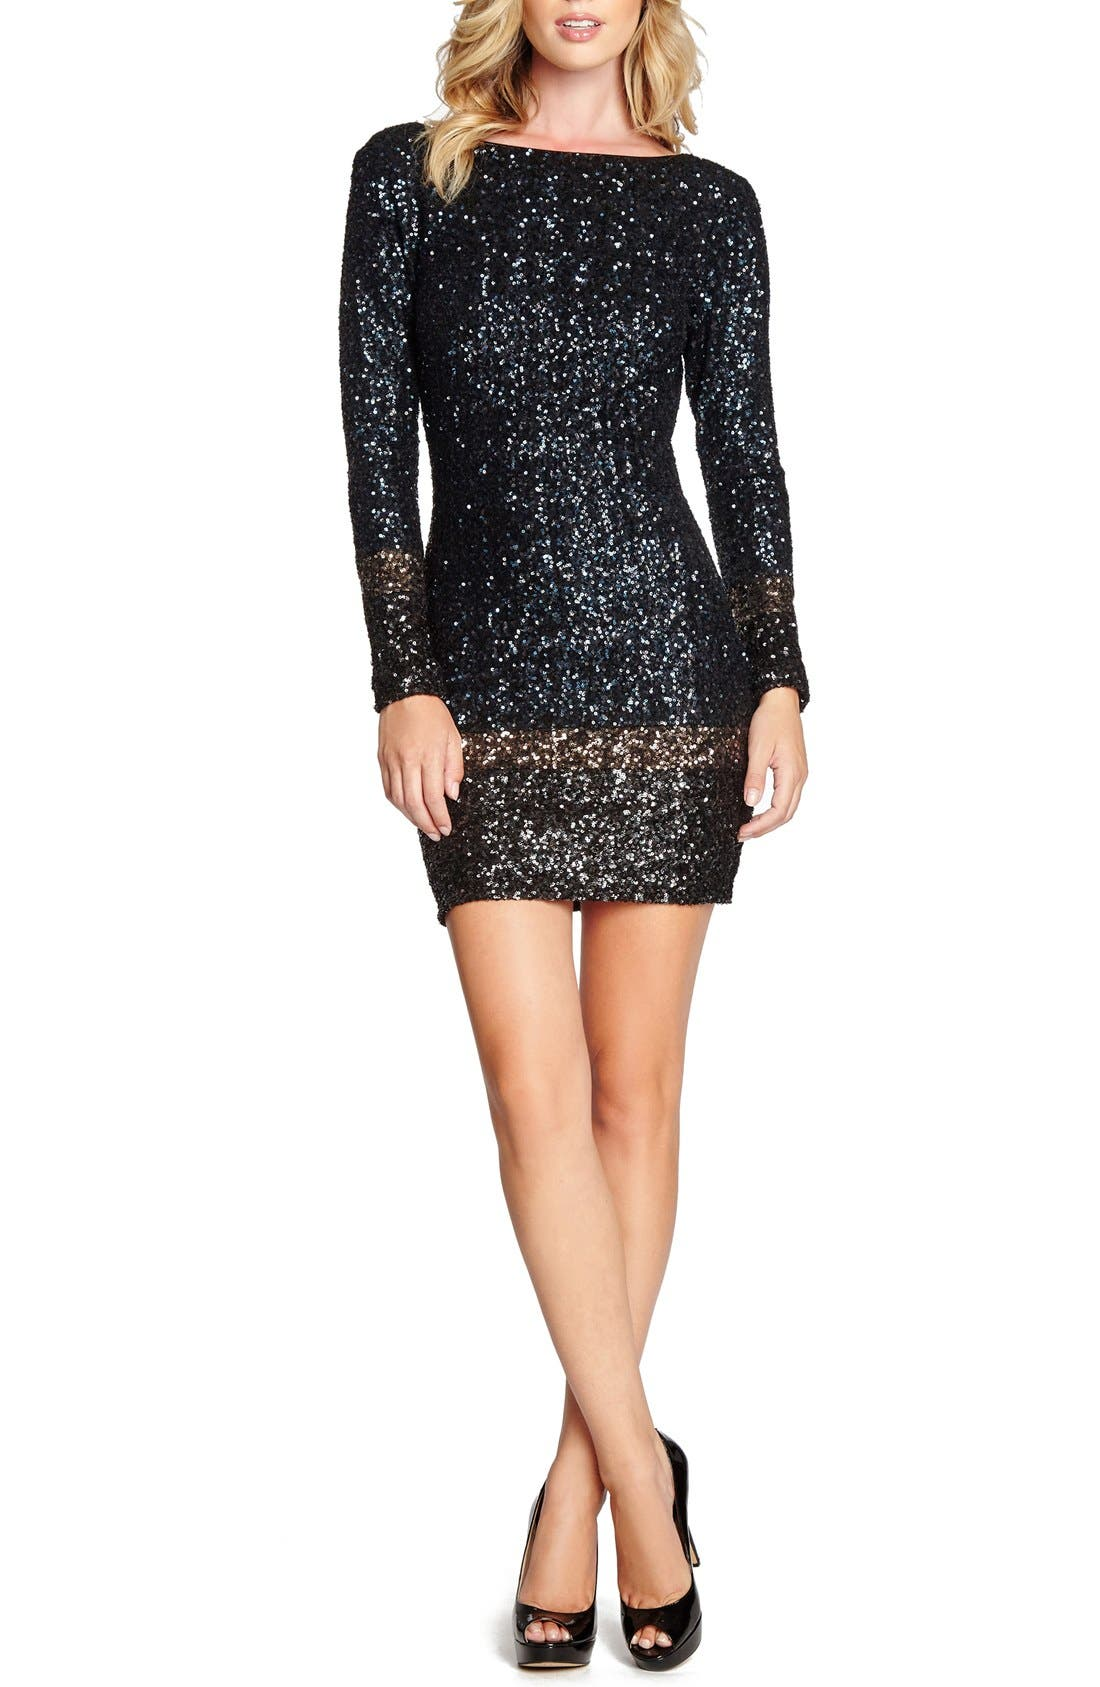 Alternate Image 1 Selected - Dress the Population 'Patricia' Open Back Sequin Minidress